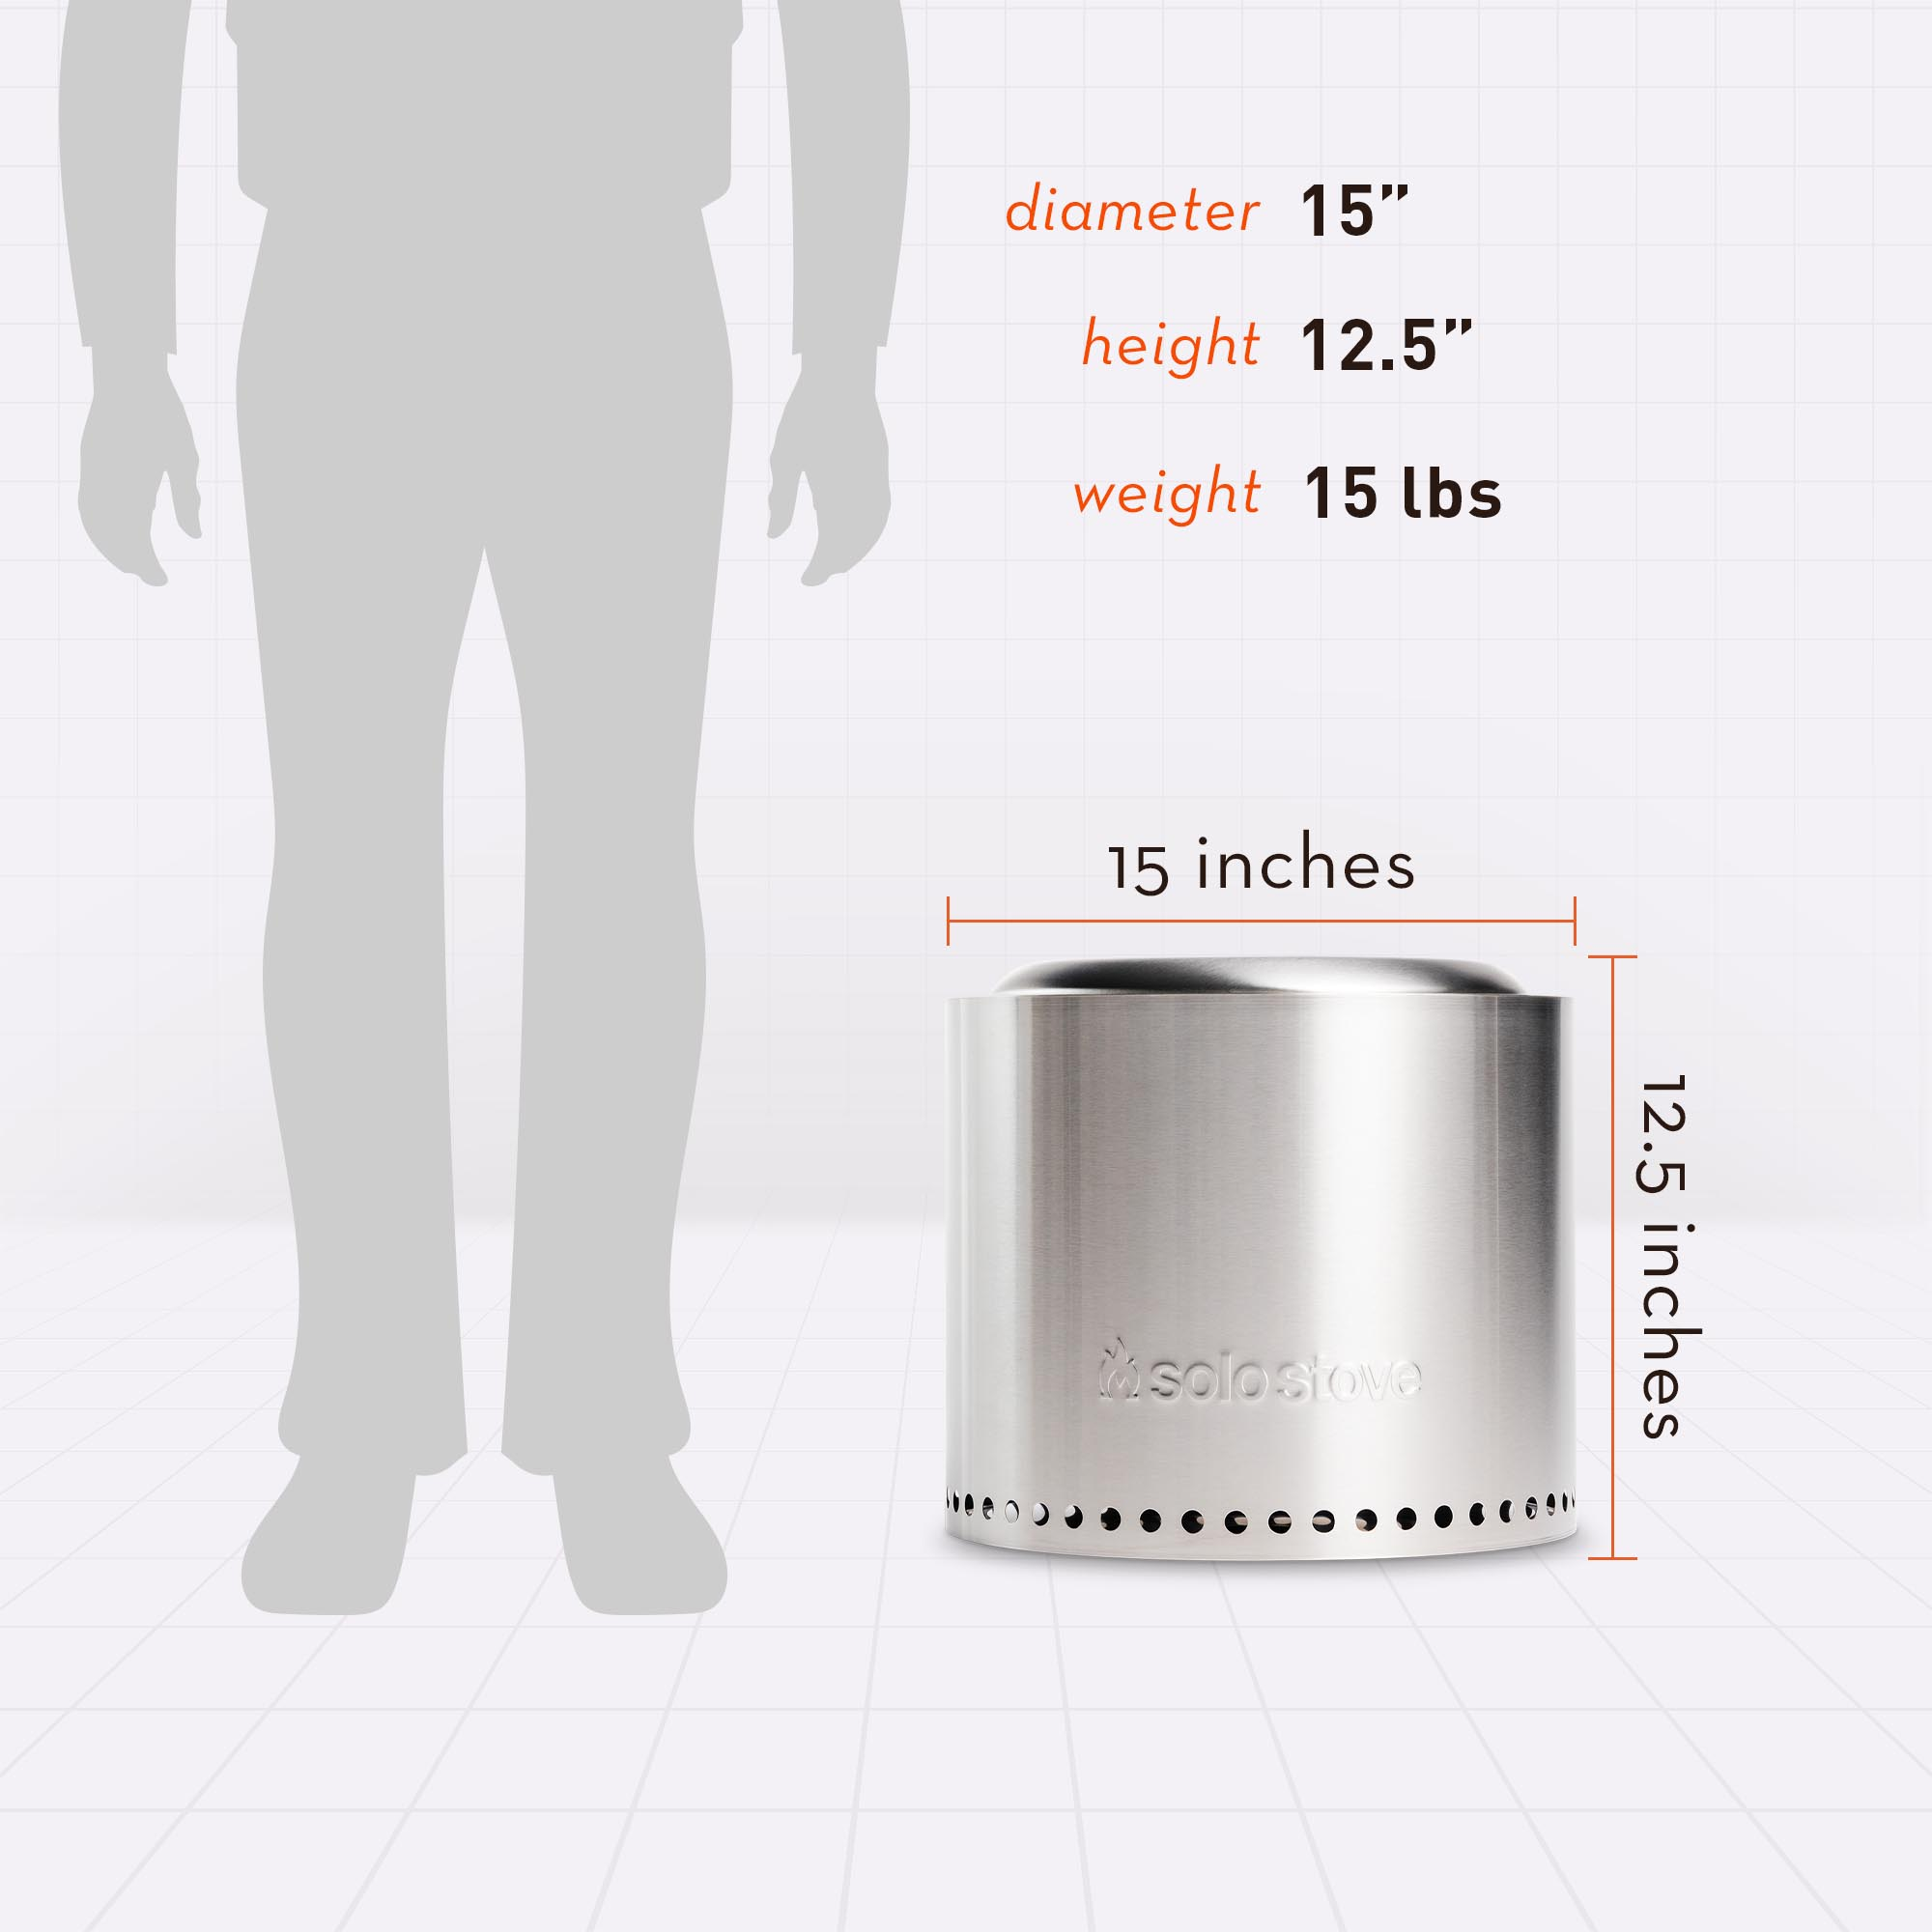 12.5 Inches Tall, 15 Inches Wide